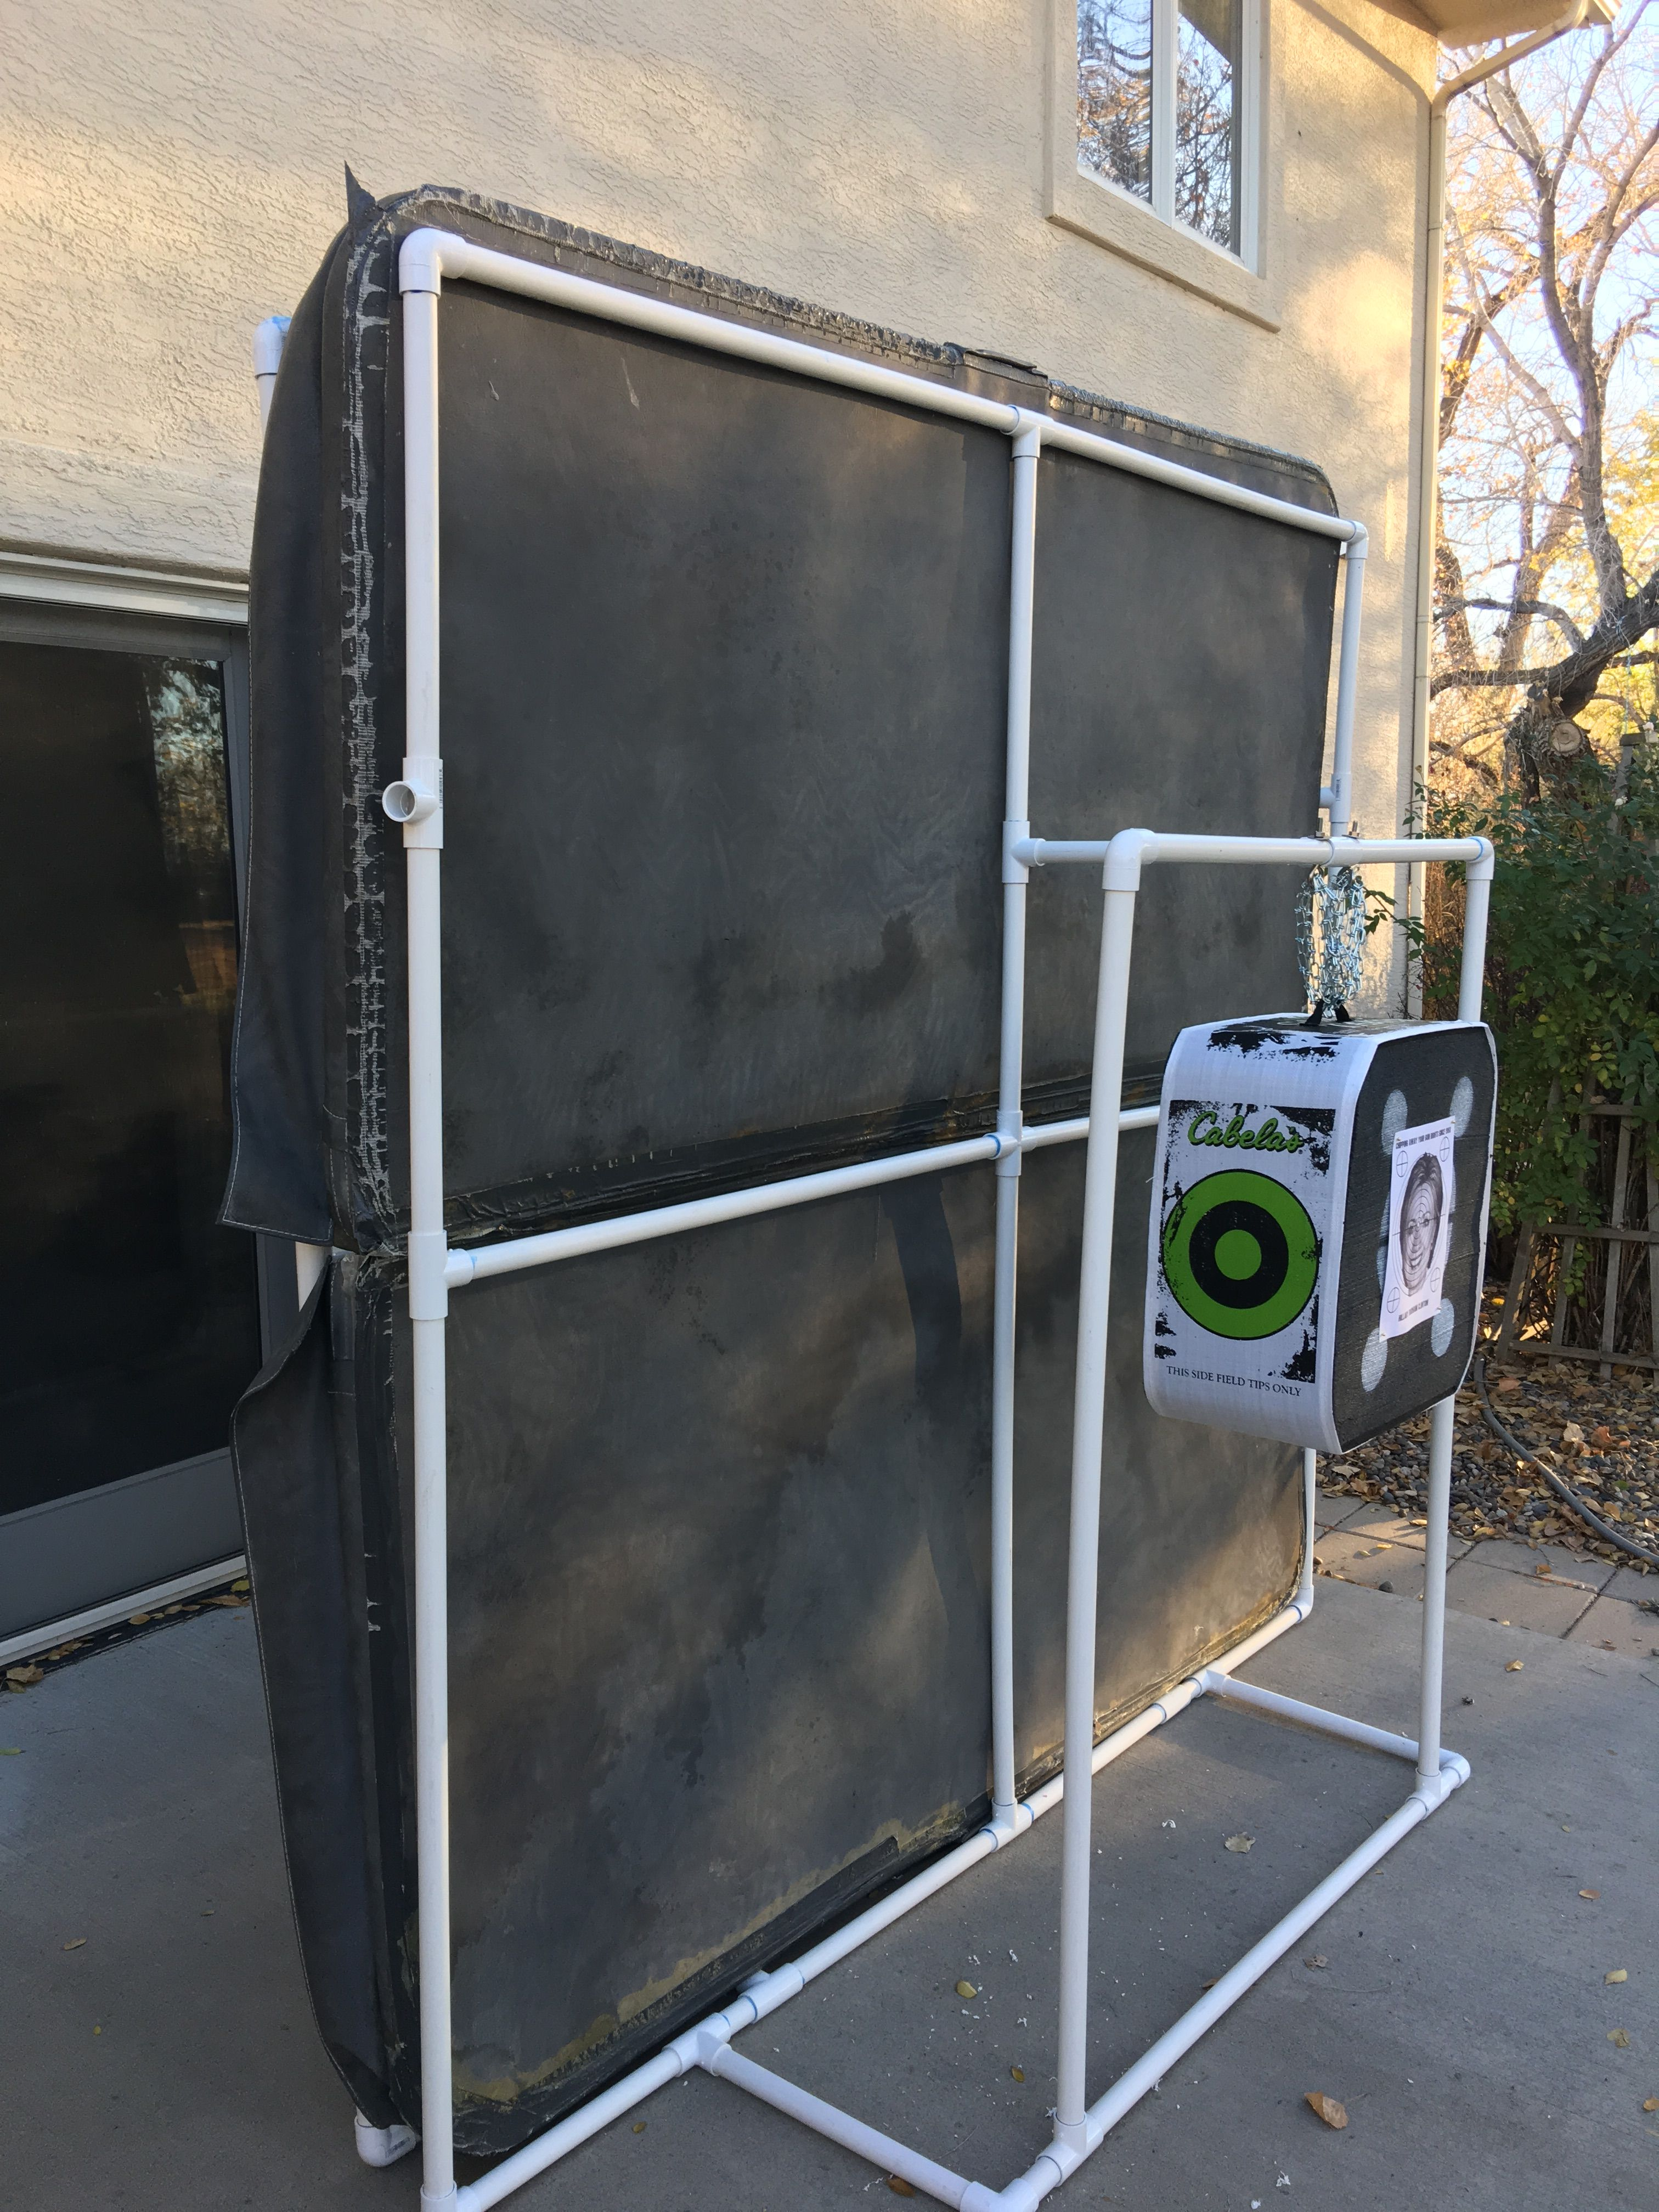 This Is An Archery Target And Backstop I Made Out Of Pvc And An Old Hot Tub Cover Diy Archery Target Archery Accessories Traditional Archery